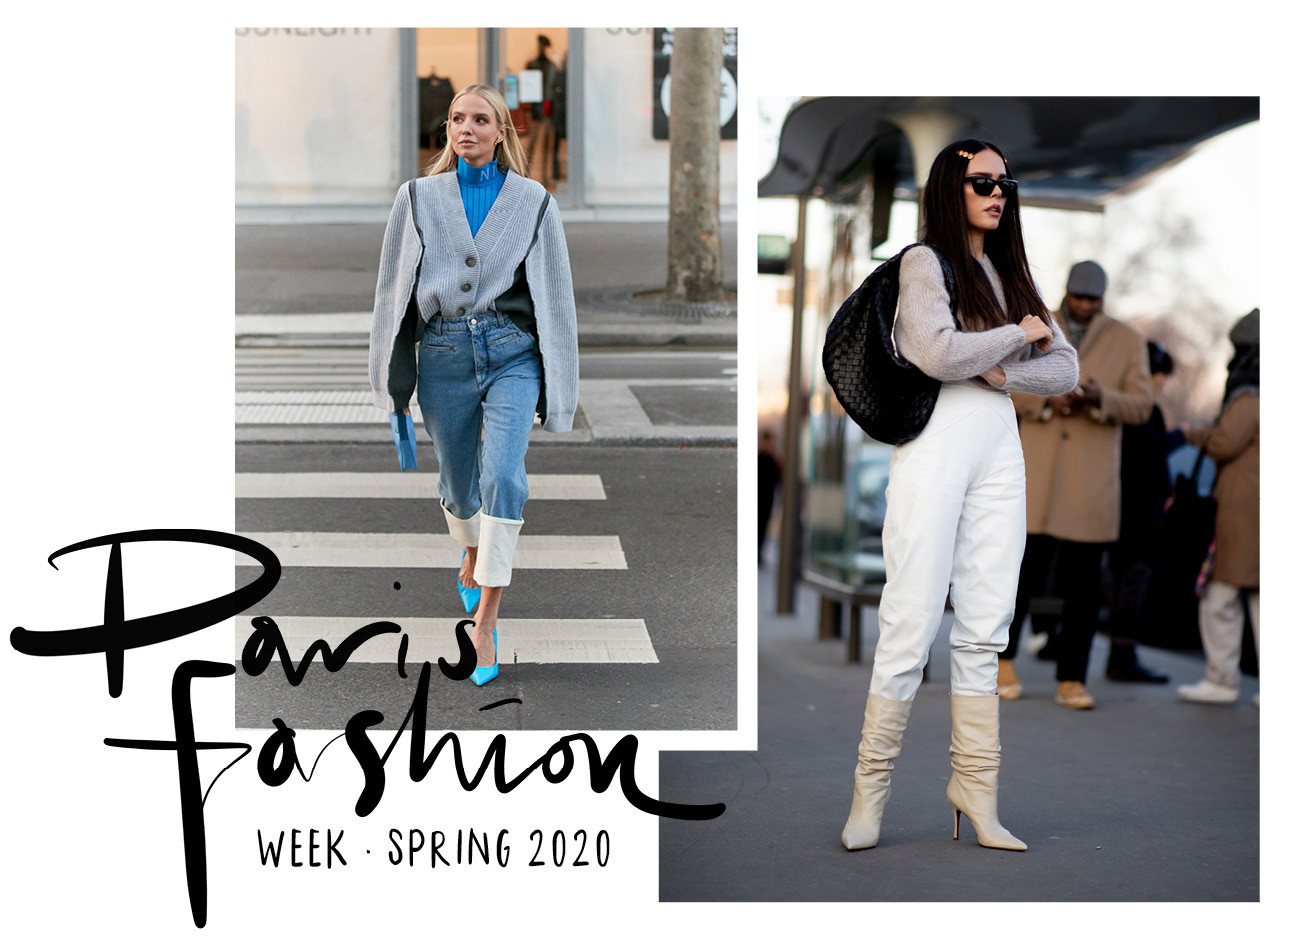 beelden van paris haute couture week en de streetstyle fashion